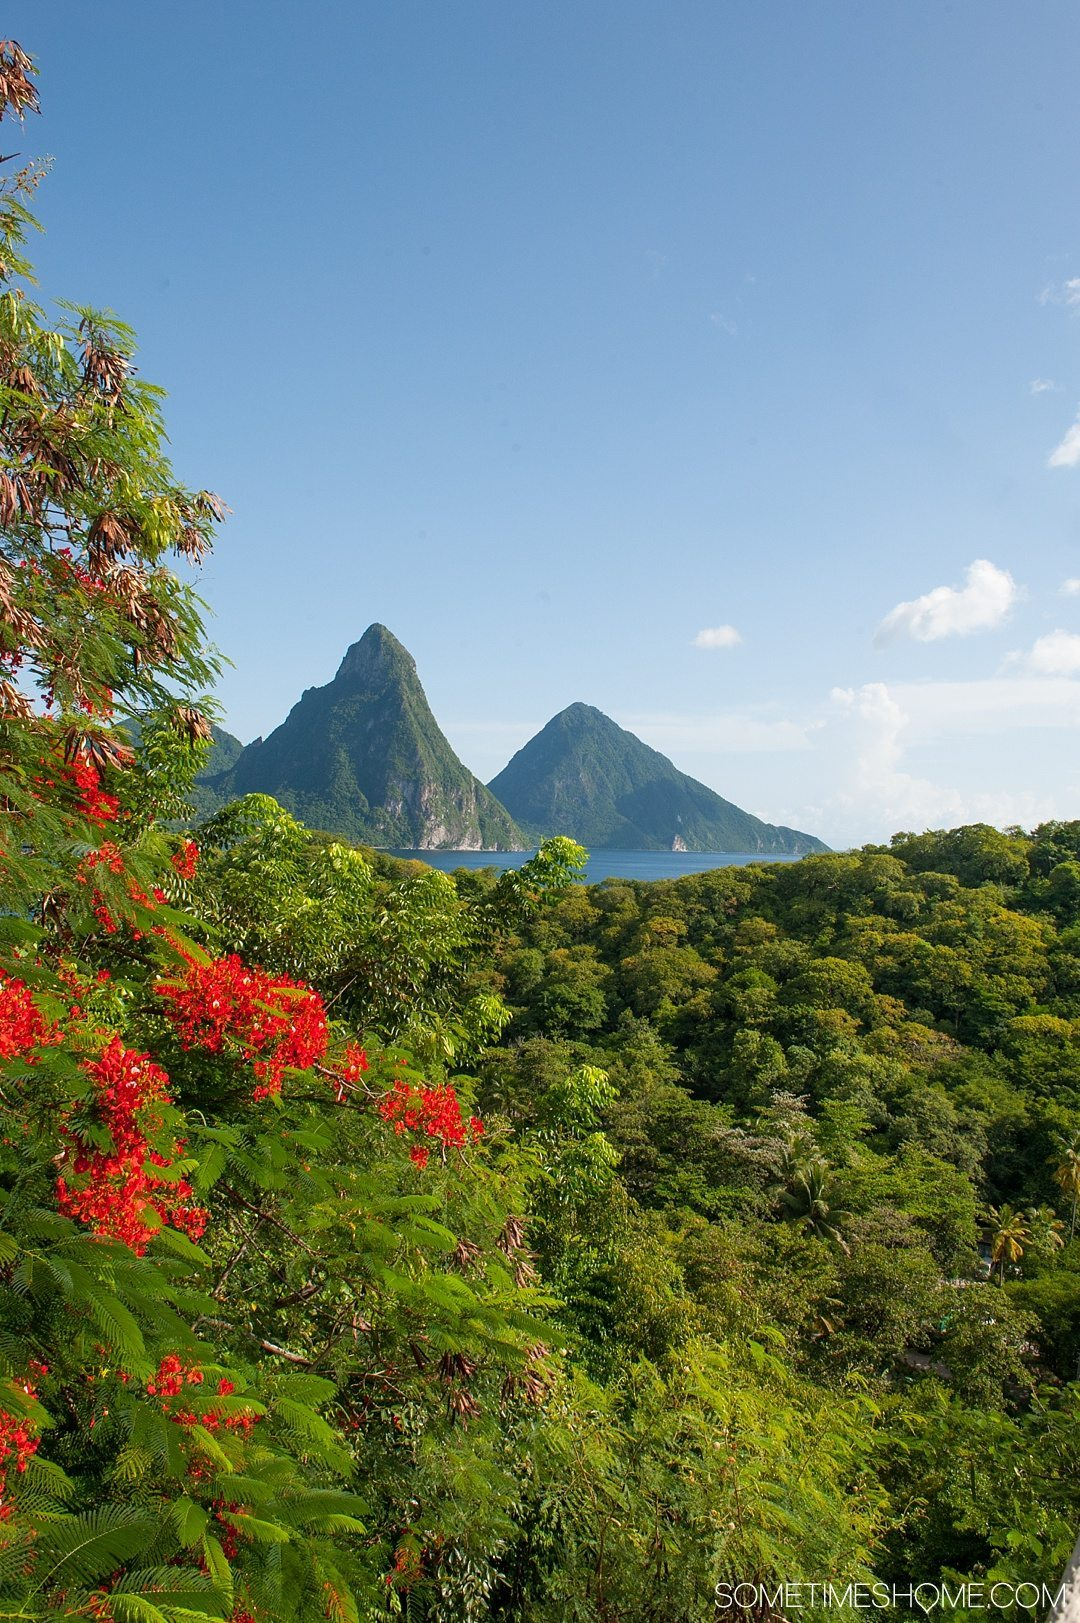 Must Do Activities to Revel In on Vacation in St. Lucia on Sometimes Home travel blog. Photos of the Piton mountains where you can hike and enjoy the view.